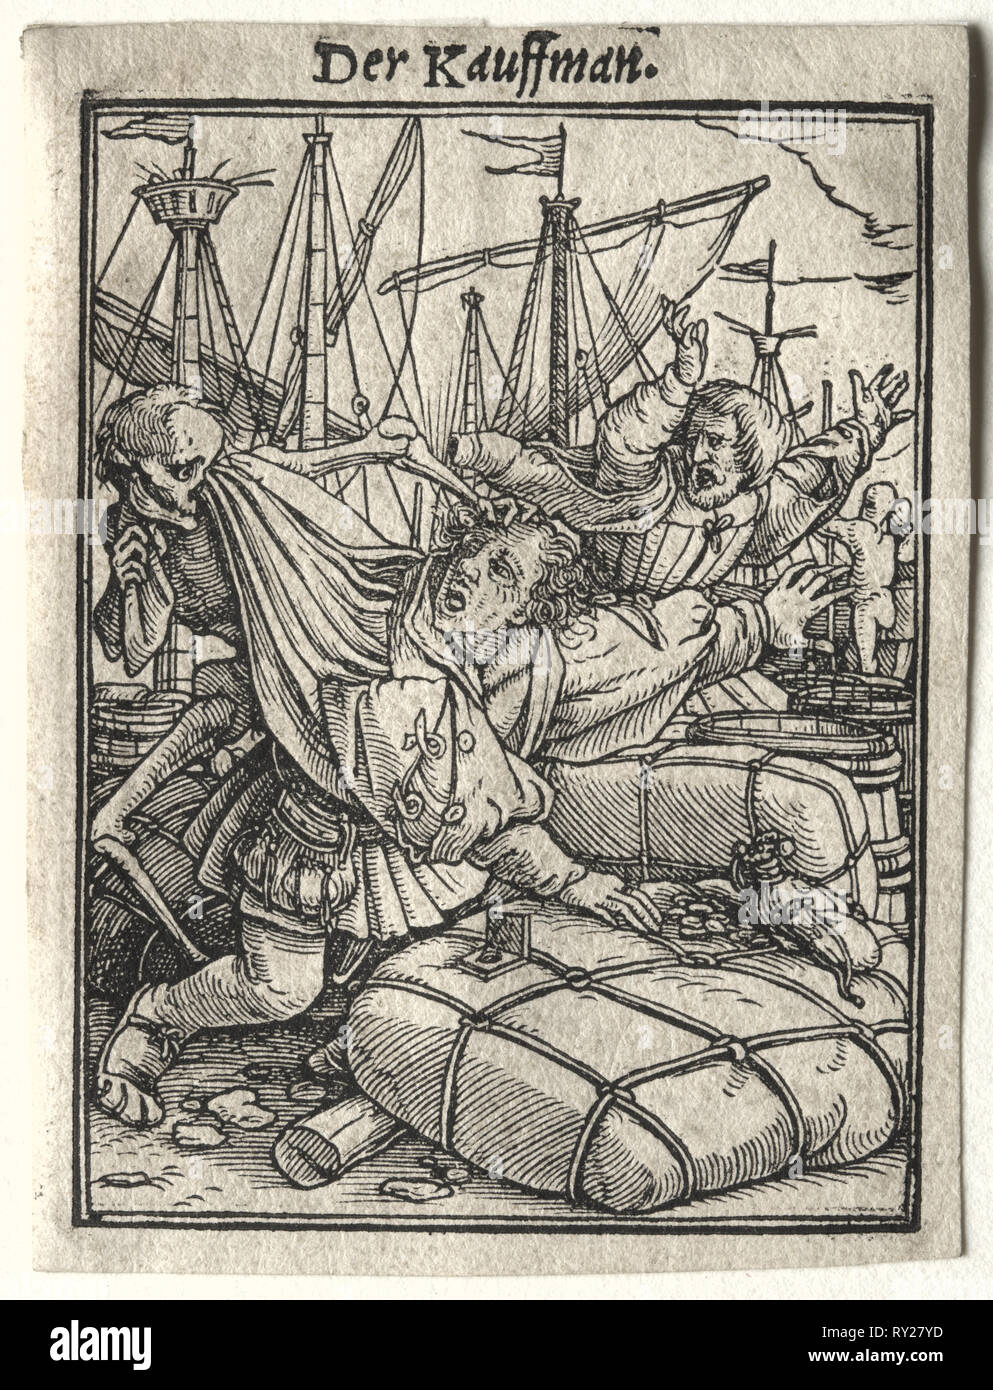 The Merchant. Hans Holbein (German, 1497/98-1543). Woodcut - Stock Image